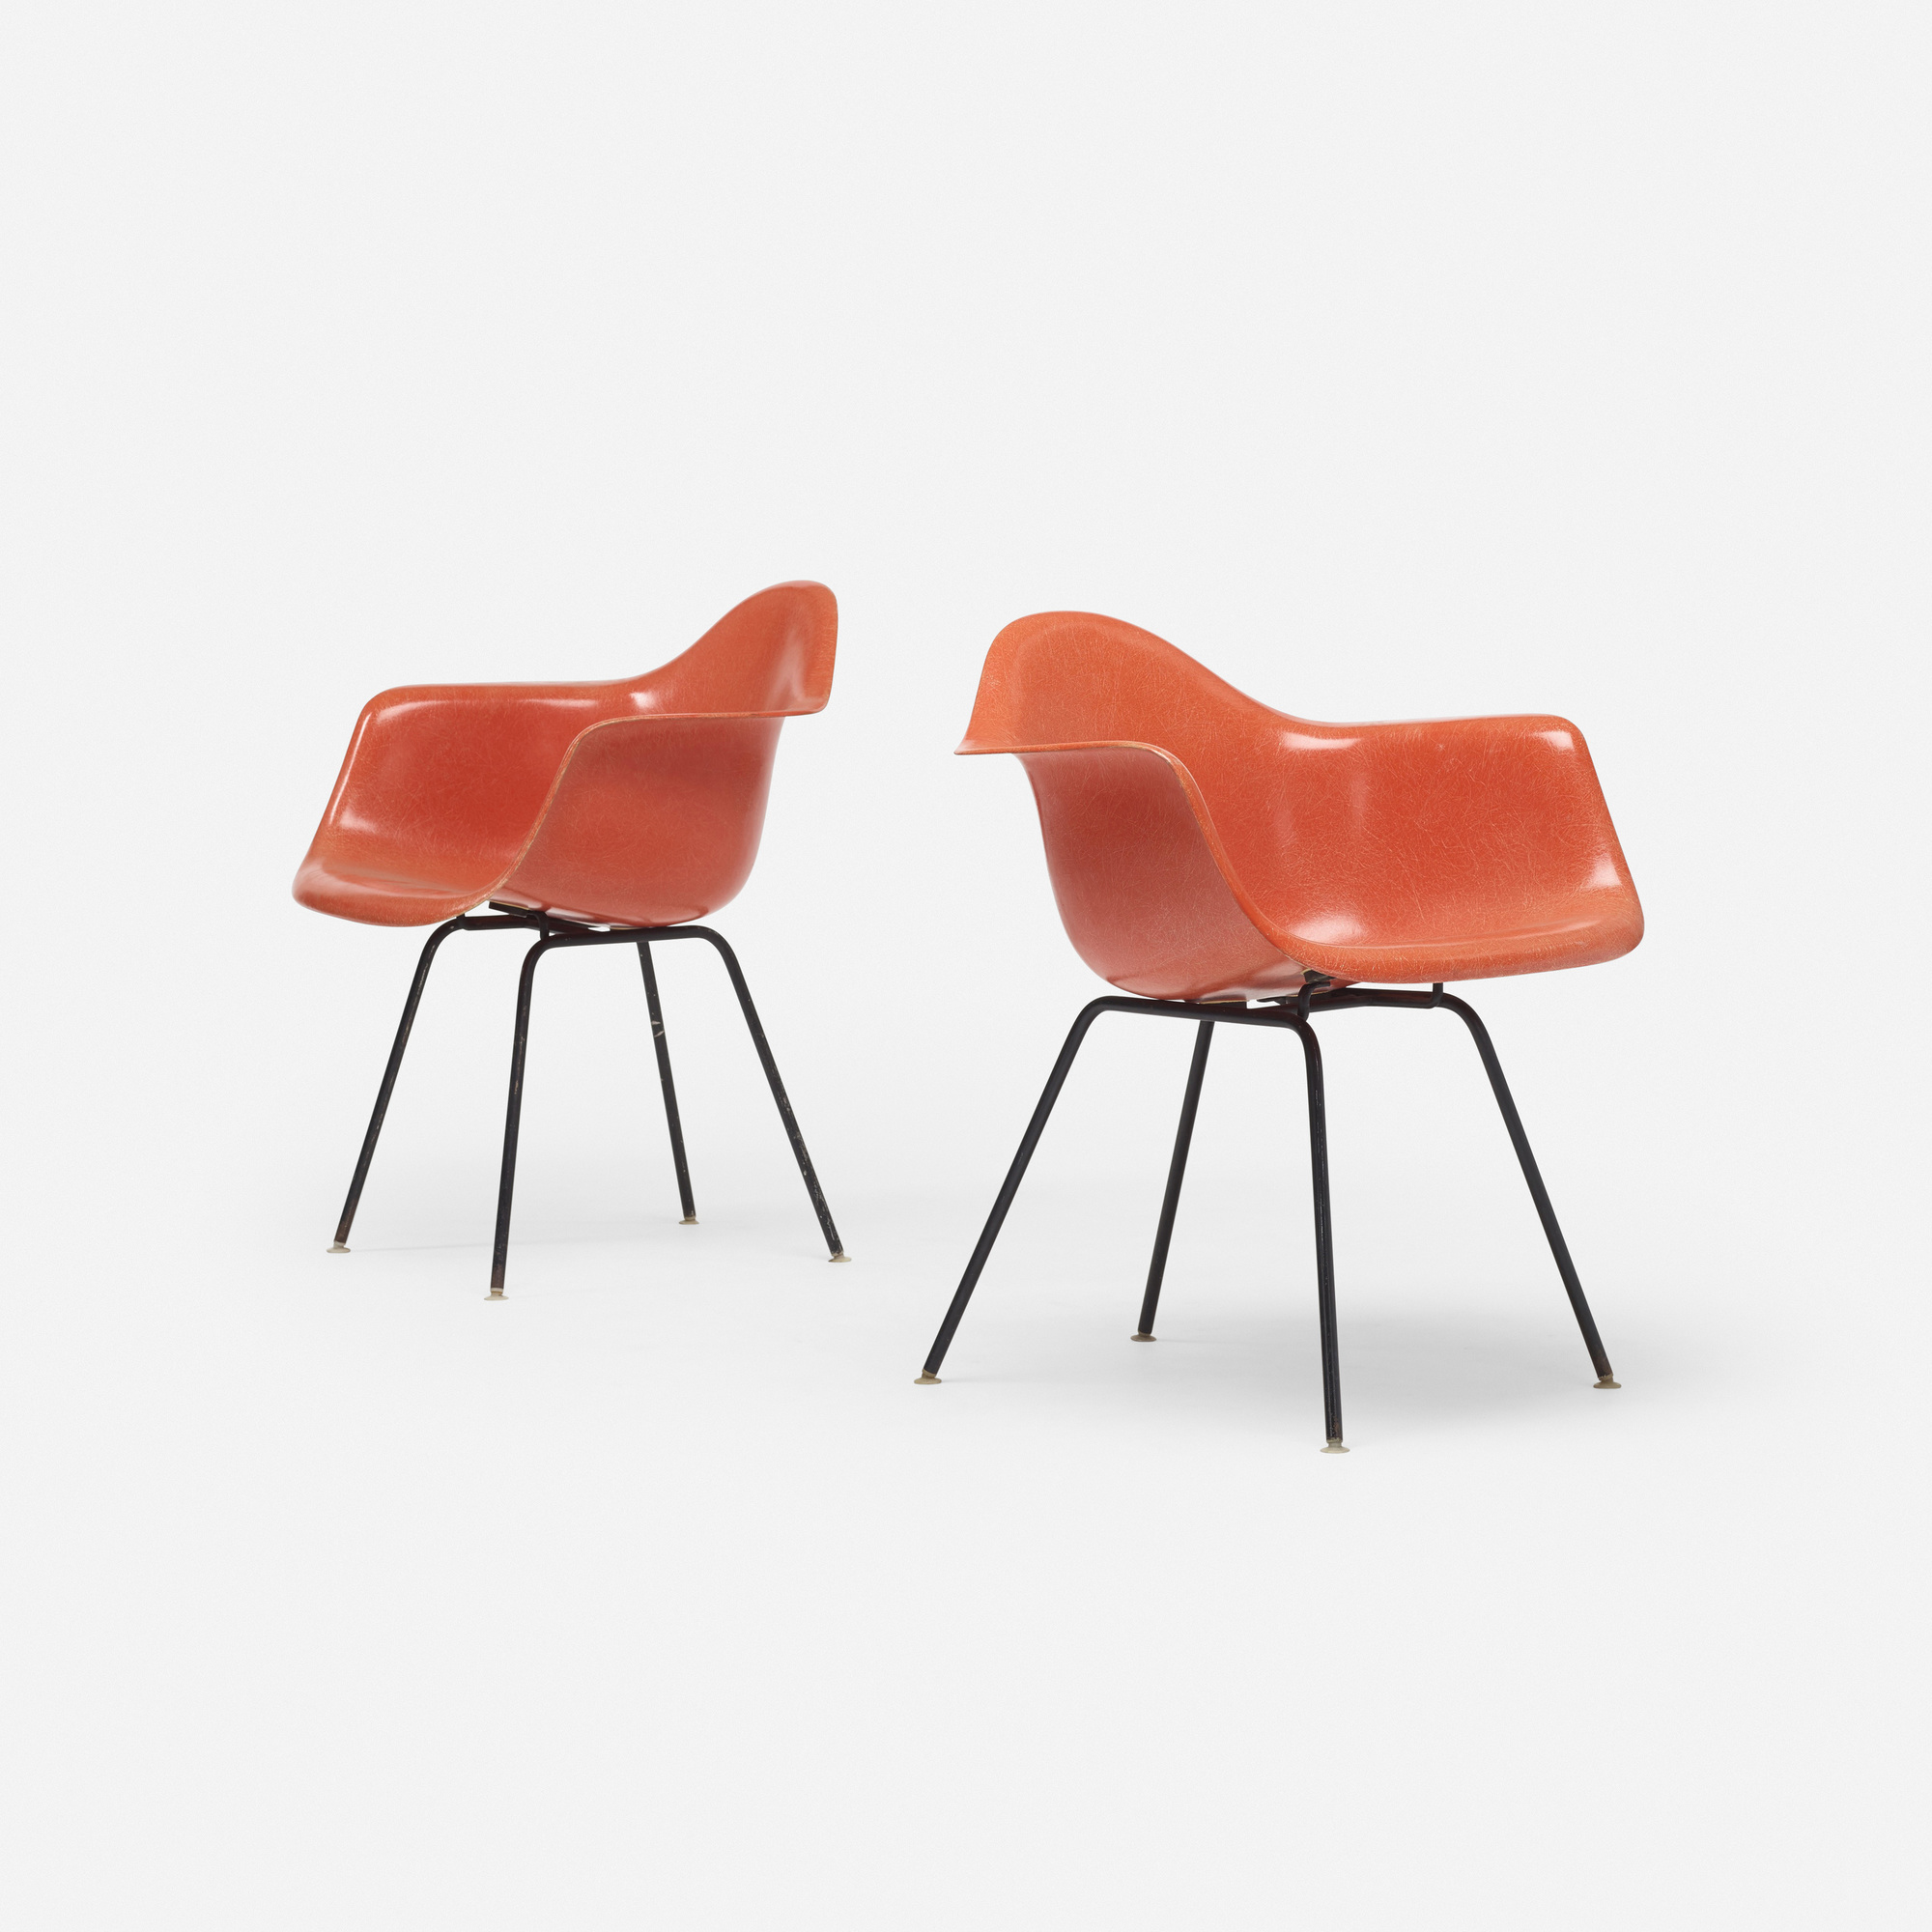 263: Charles and Ray Eames / DAXs, pair (1 of 3)